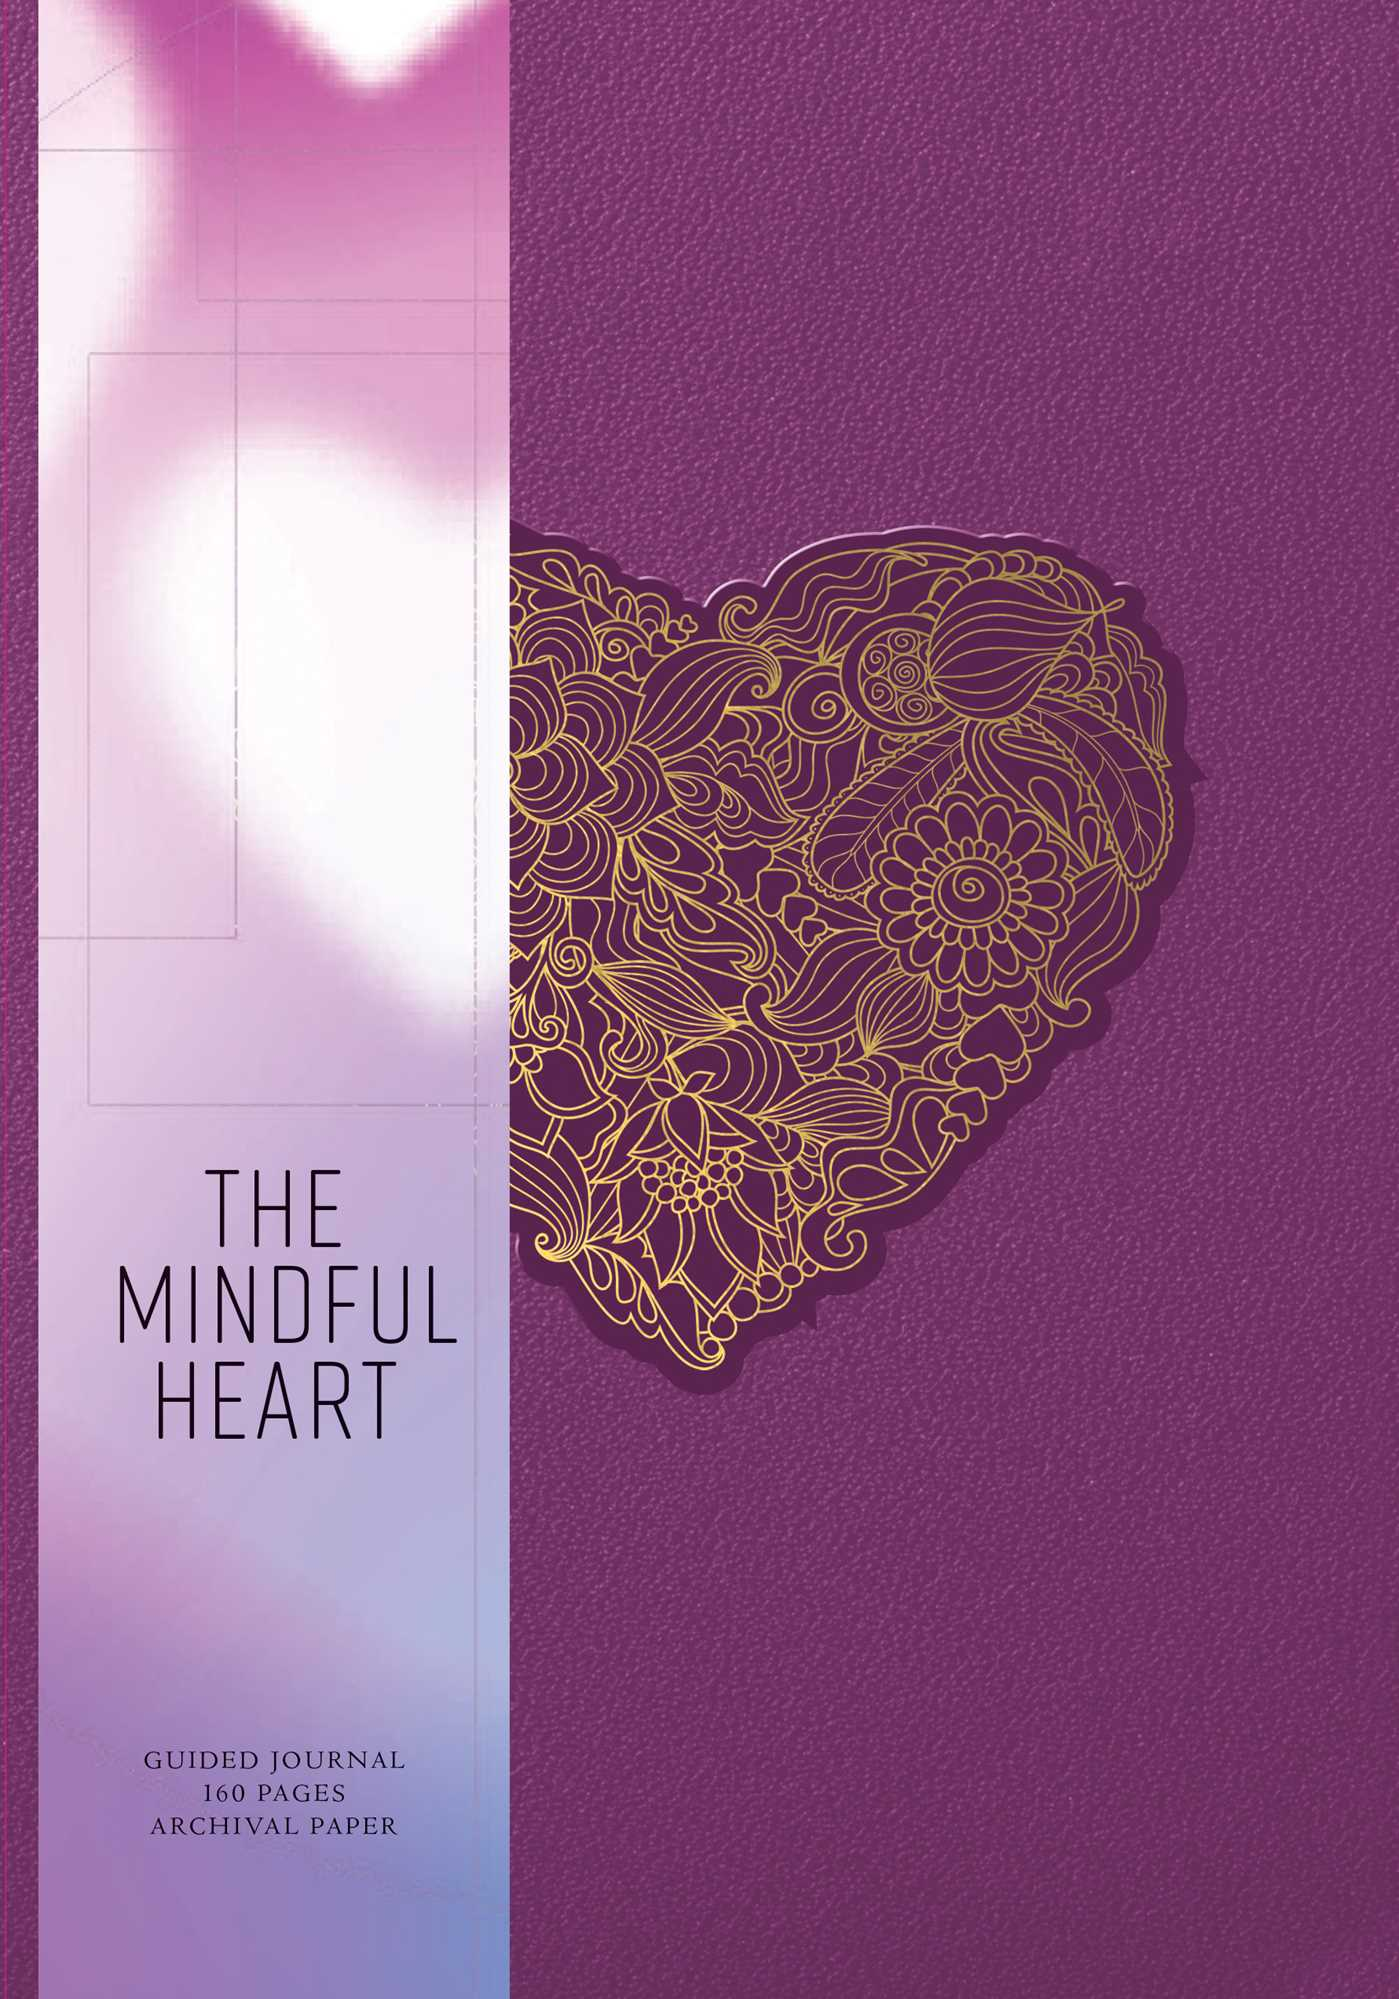 The mindful heart 9781683835530 hr